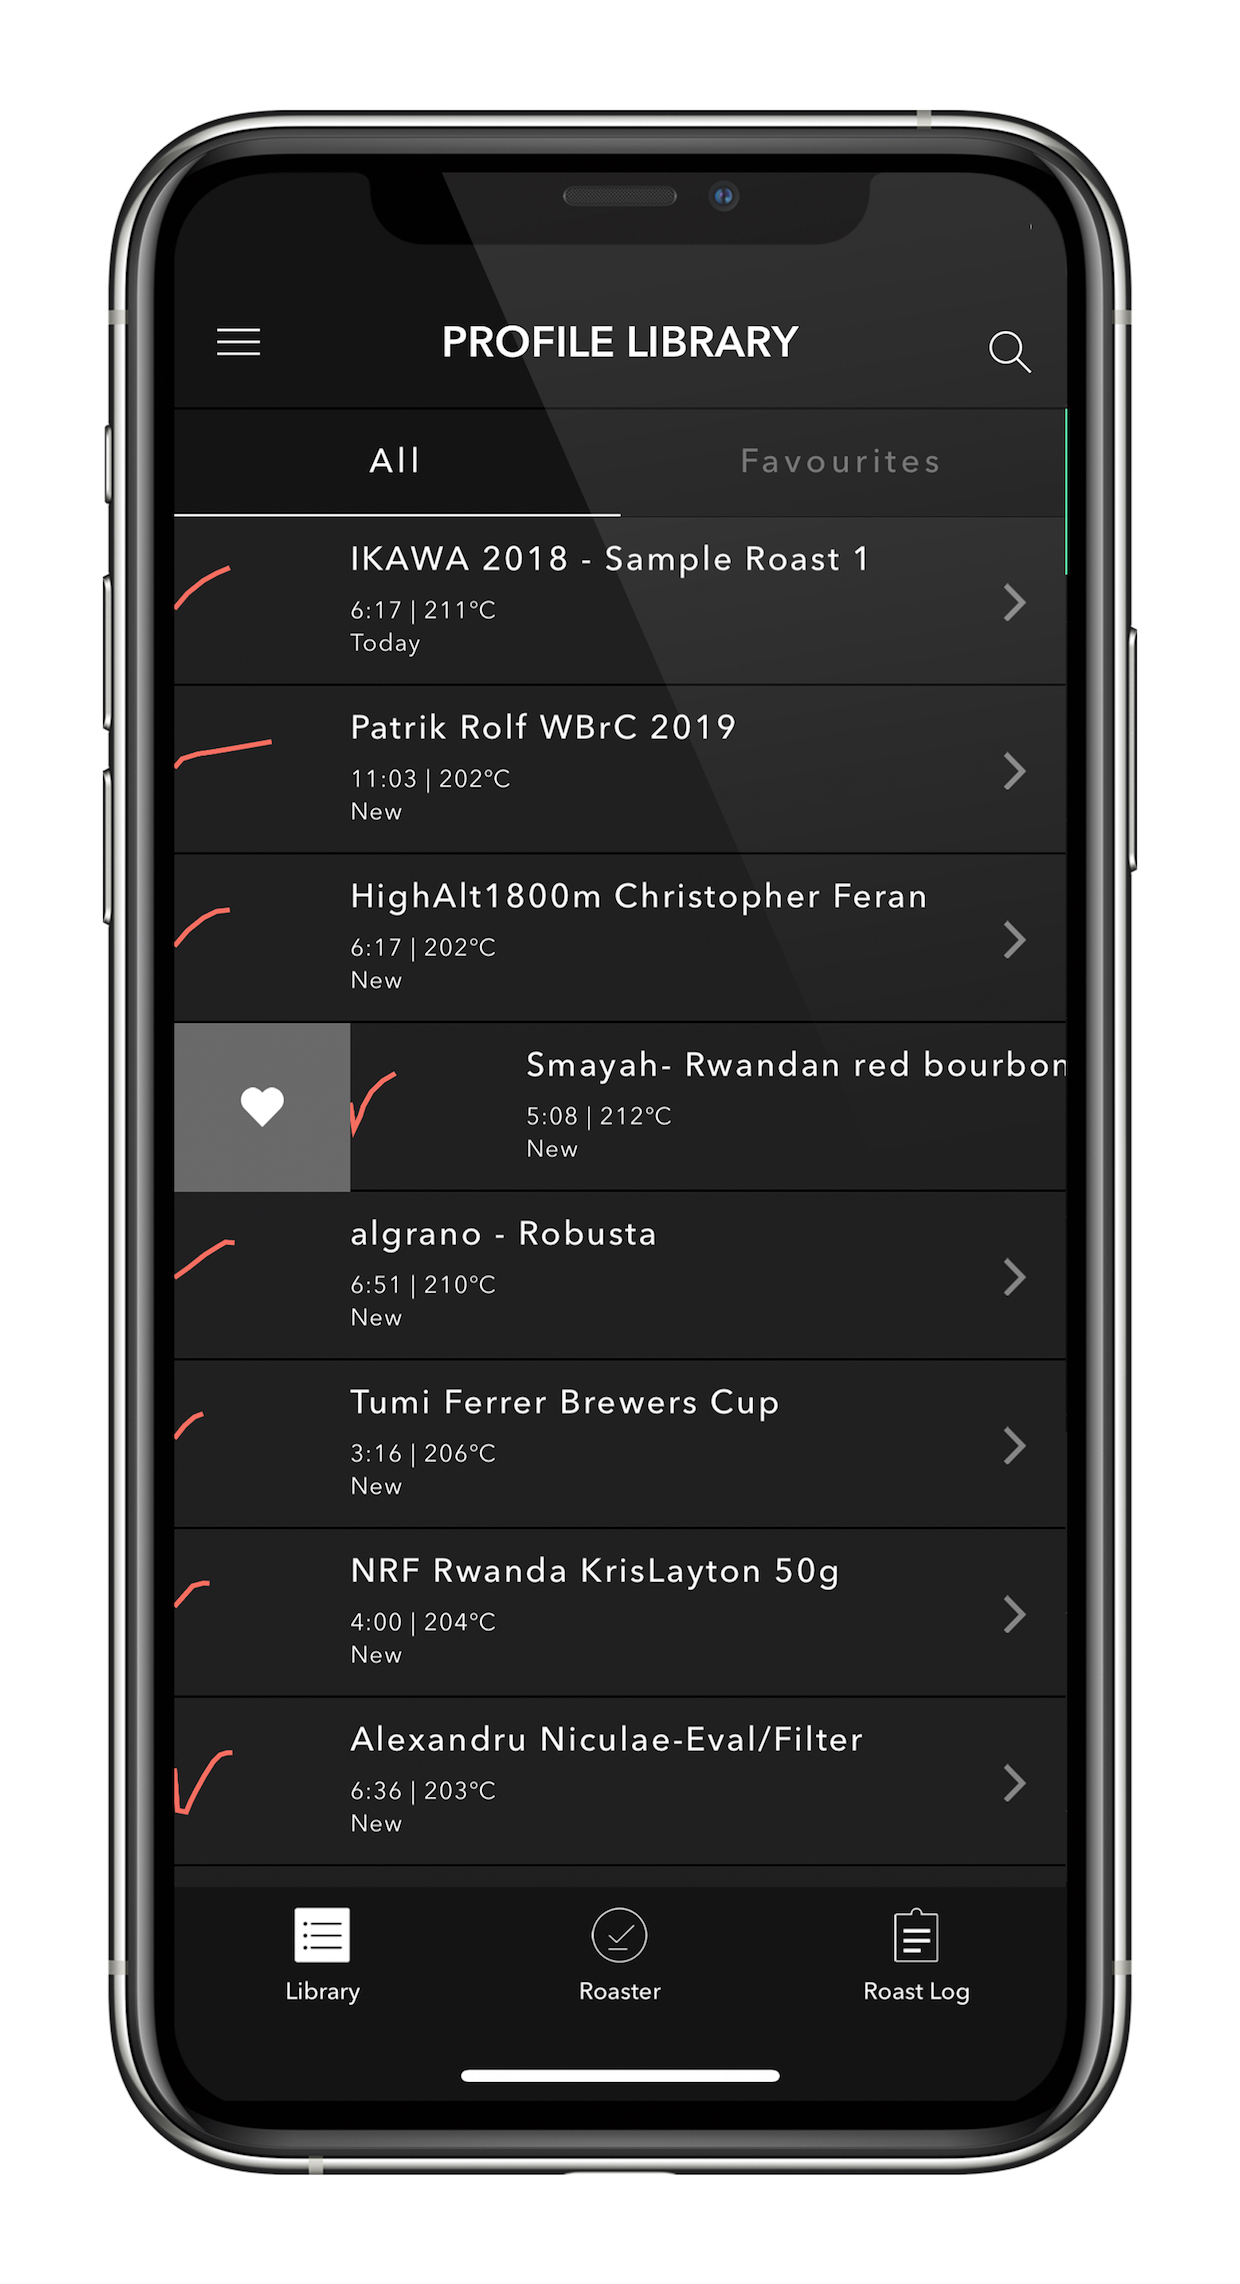 Mise à jour de l'application Ikawa 3.0